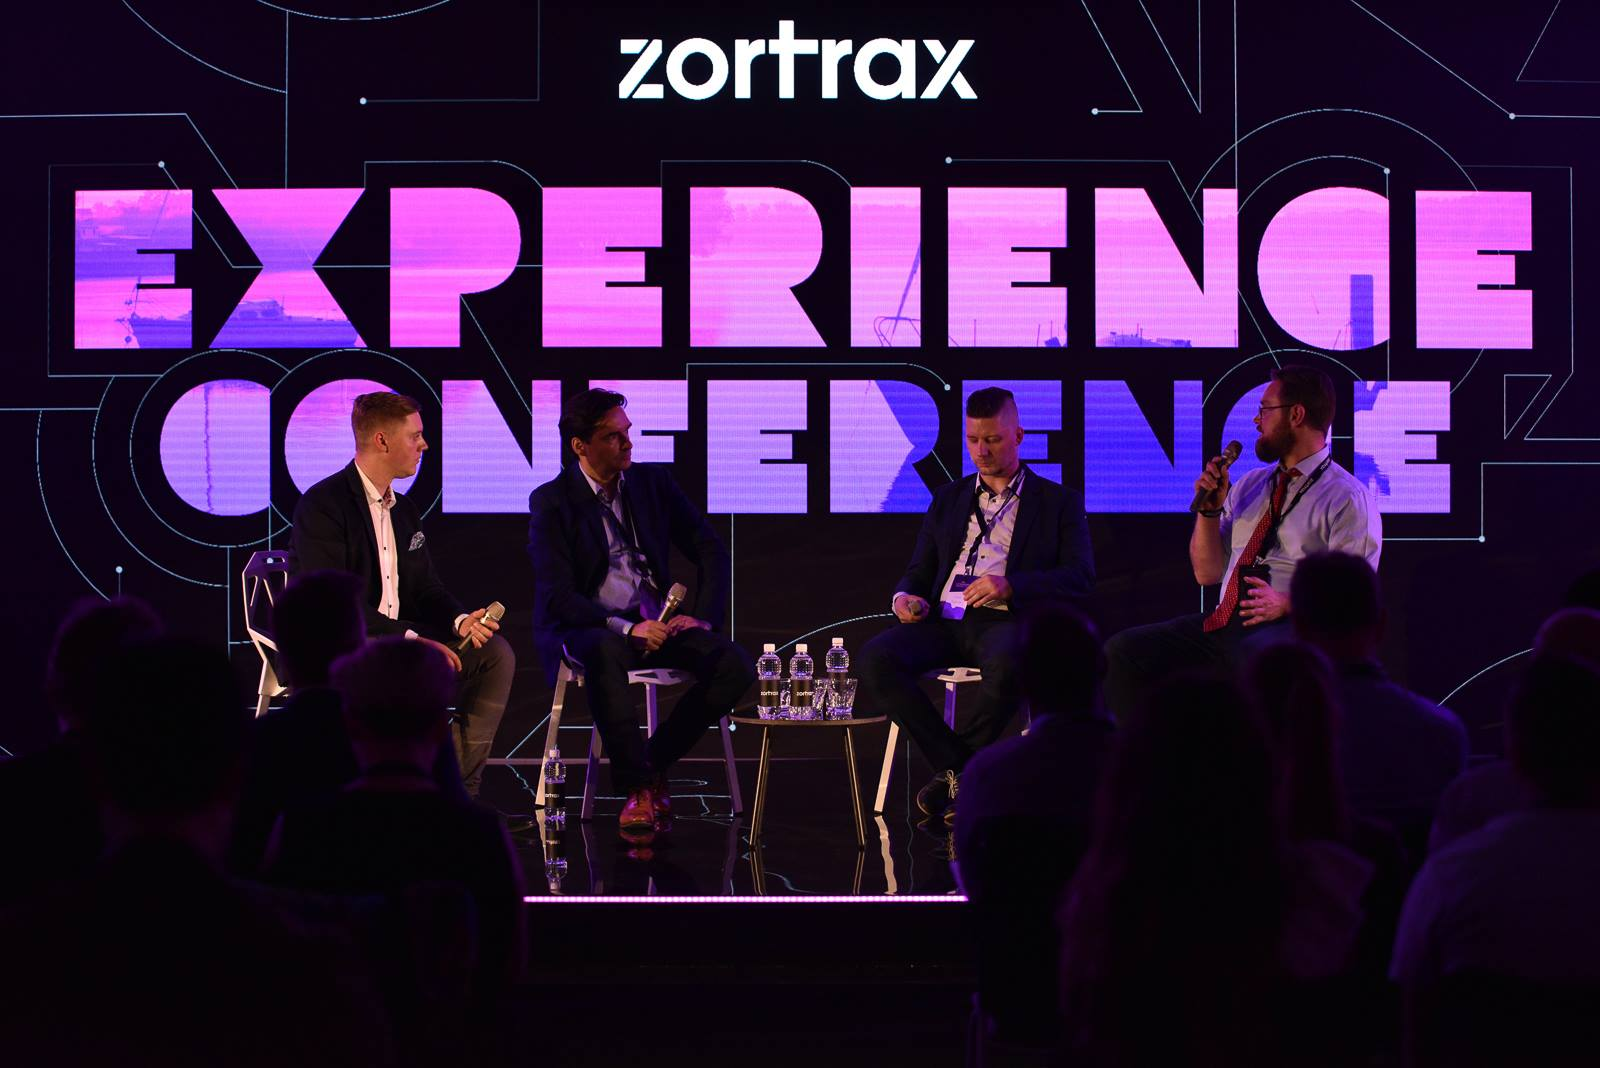 3D Printing Industry editor-in-chief (far right) Michael Petch speaking at the Zortrax Experience Conference. Photo via Zortrax.